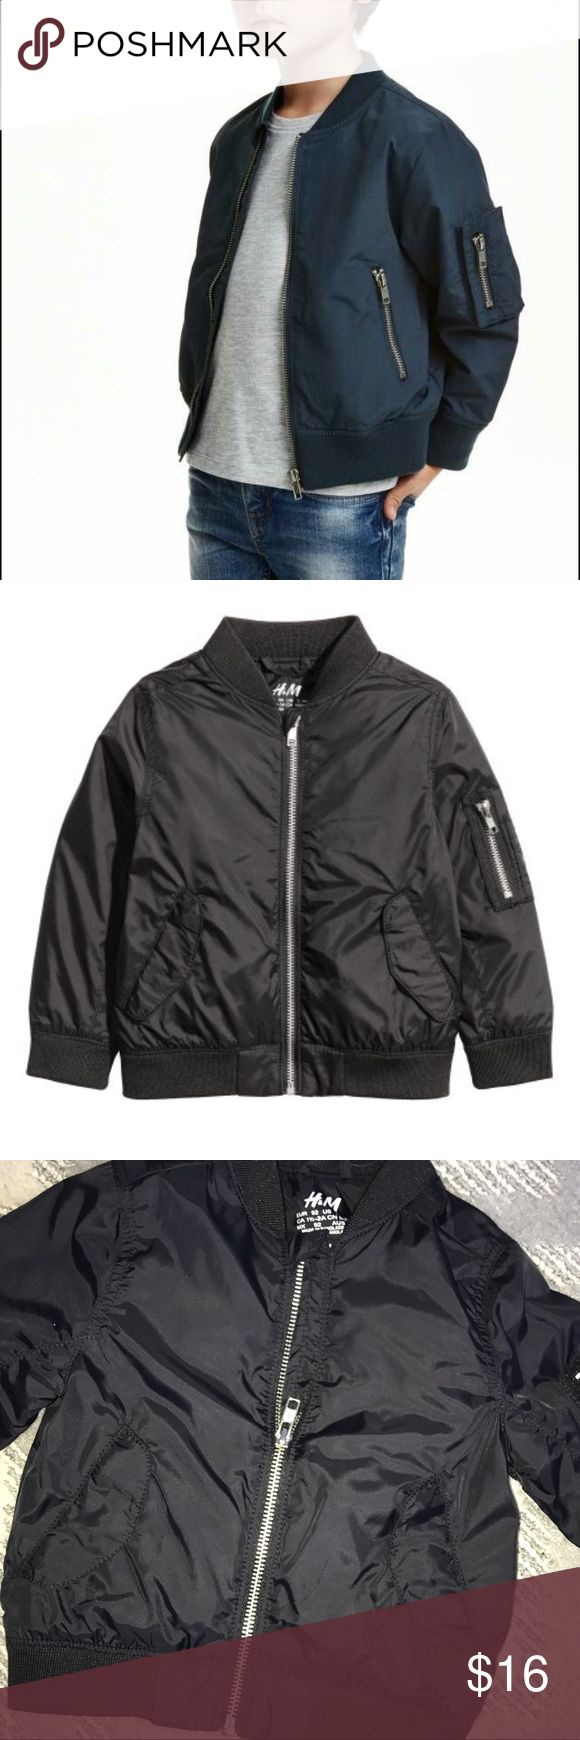 NWT H&M black bomber jacket for kids Unisex. H&M Boys Bomber Jacket in Black. With small stand-up collar, zip front, side zip pockets, and sleeve pocket with zip. Lined and Machine Washable! Retails for $30 selling fast! I have size 4-5Y H&M Jackets & Coats